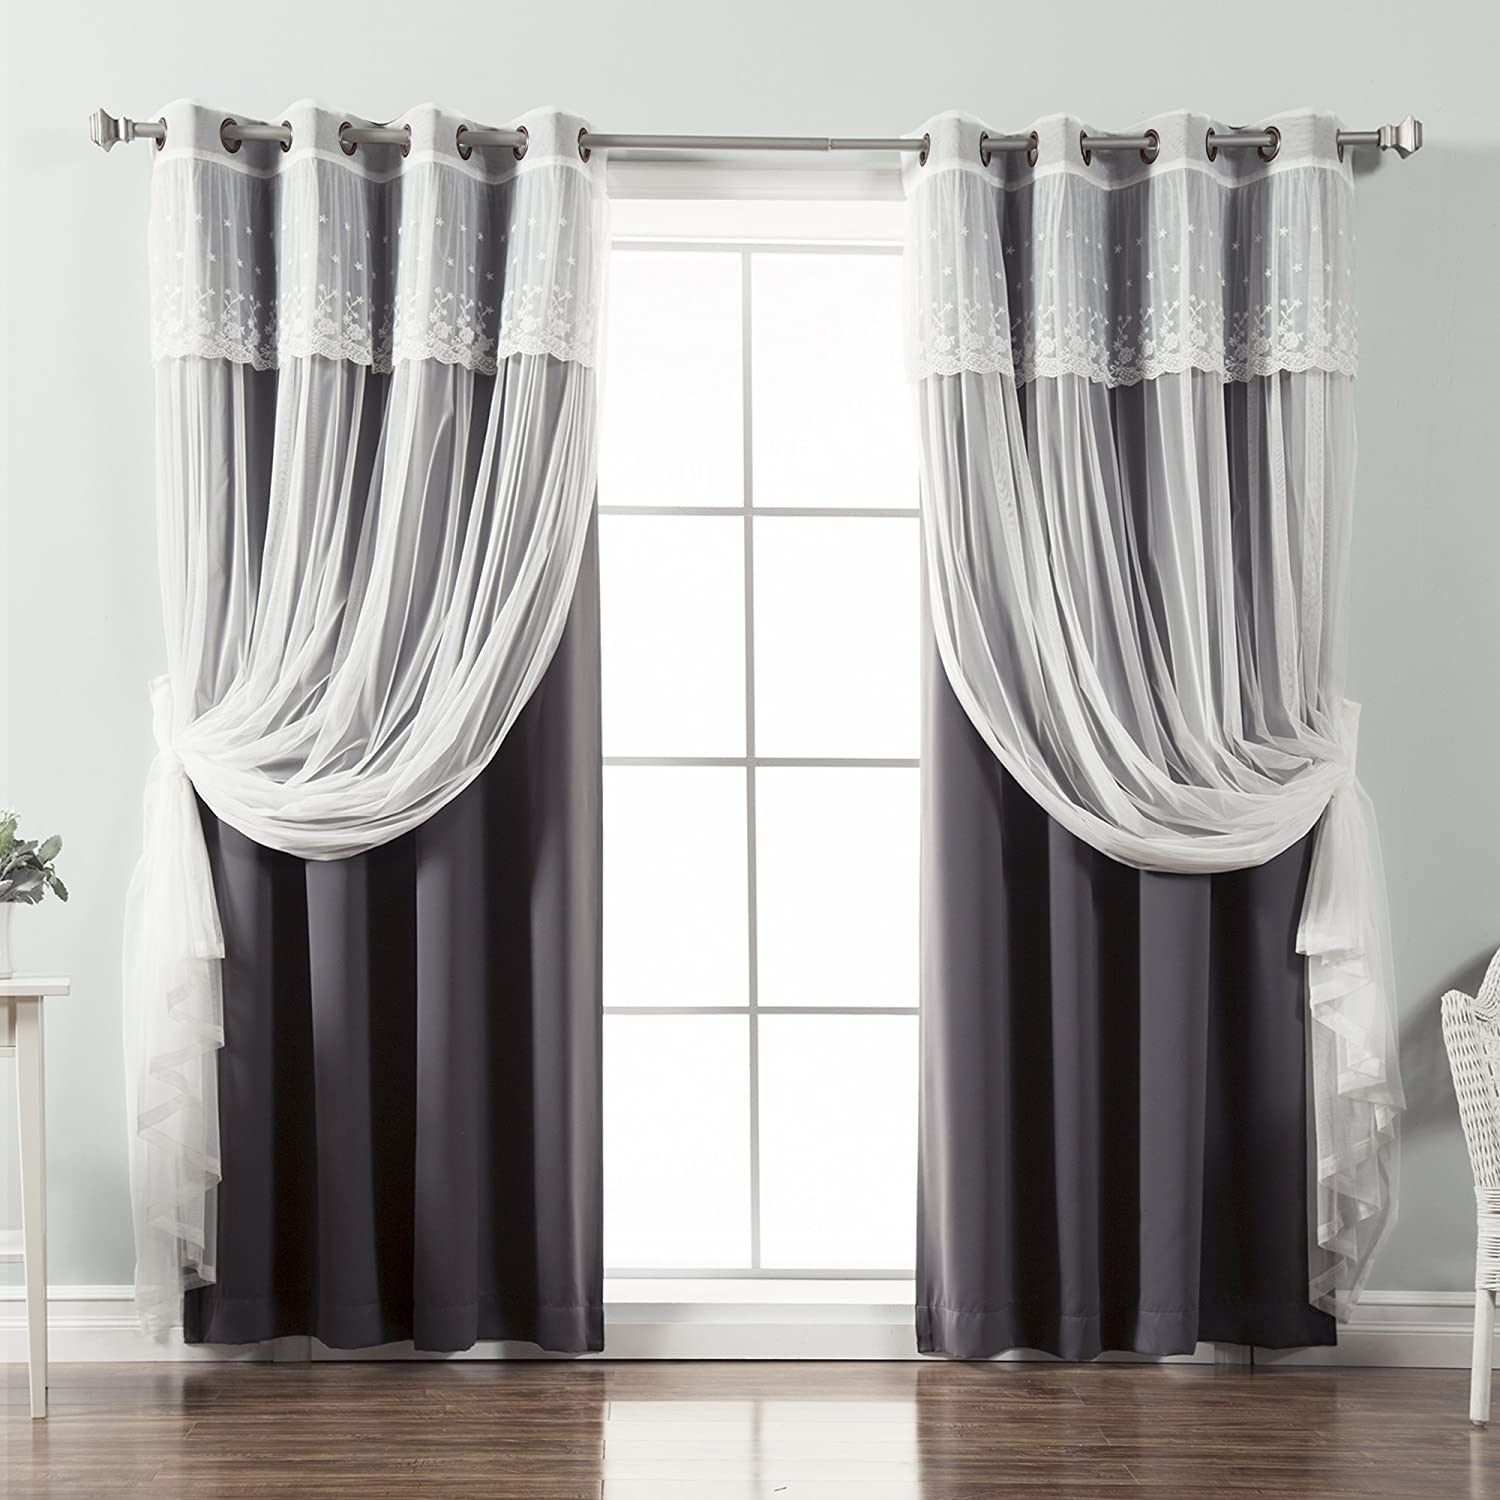 Best Home Fashion Mix & Match Tulle Sheer with Attached Valance & Solid Blackout Curtain Set, Stainless Steel Nickel Grommet Top, Beige, 52